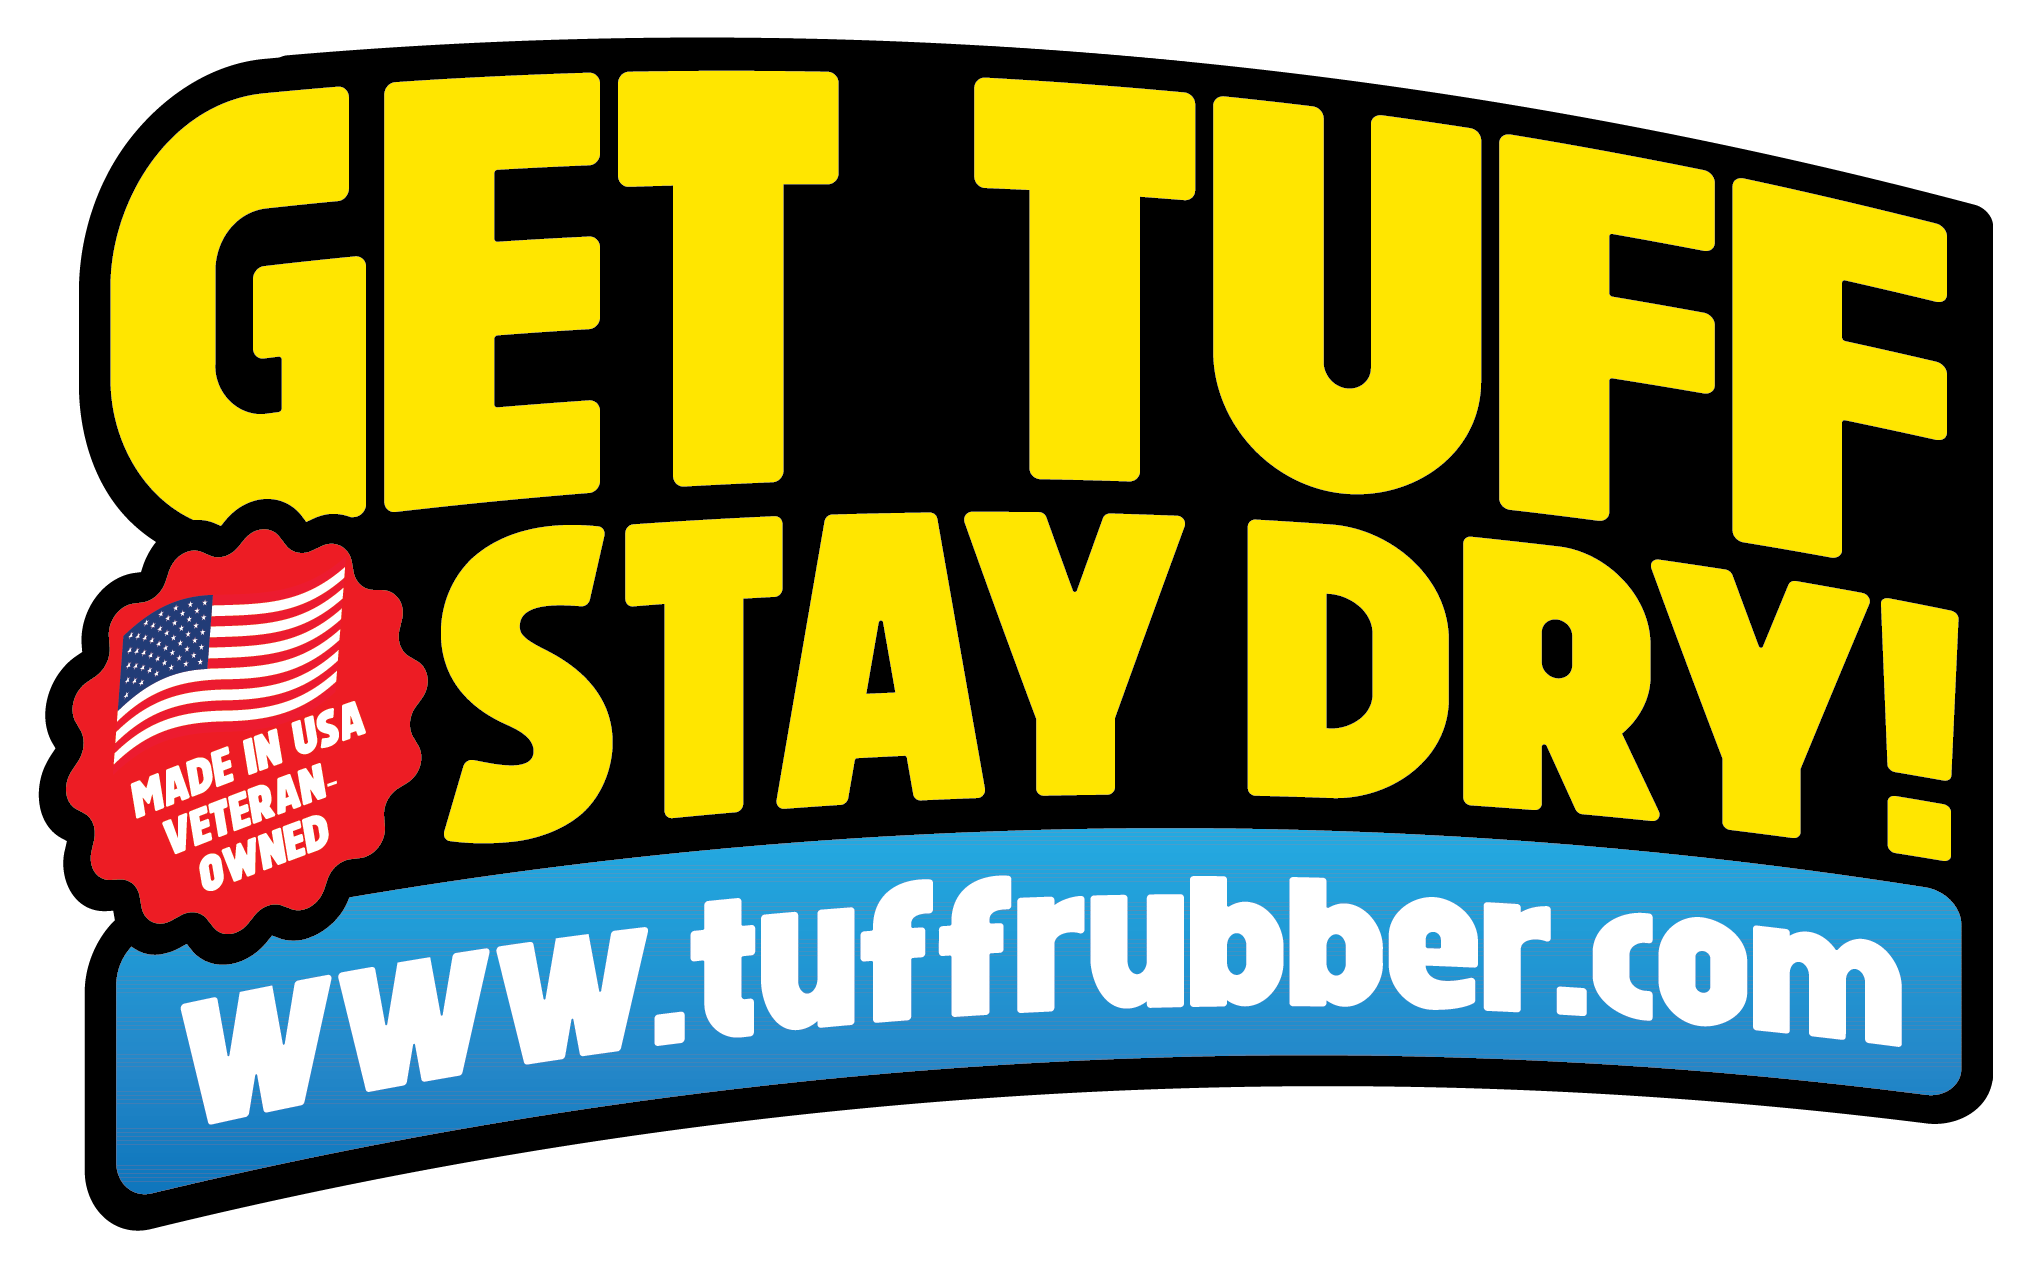 tuffrubber_facebook_cover.png